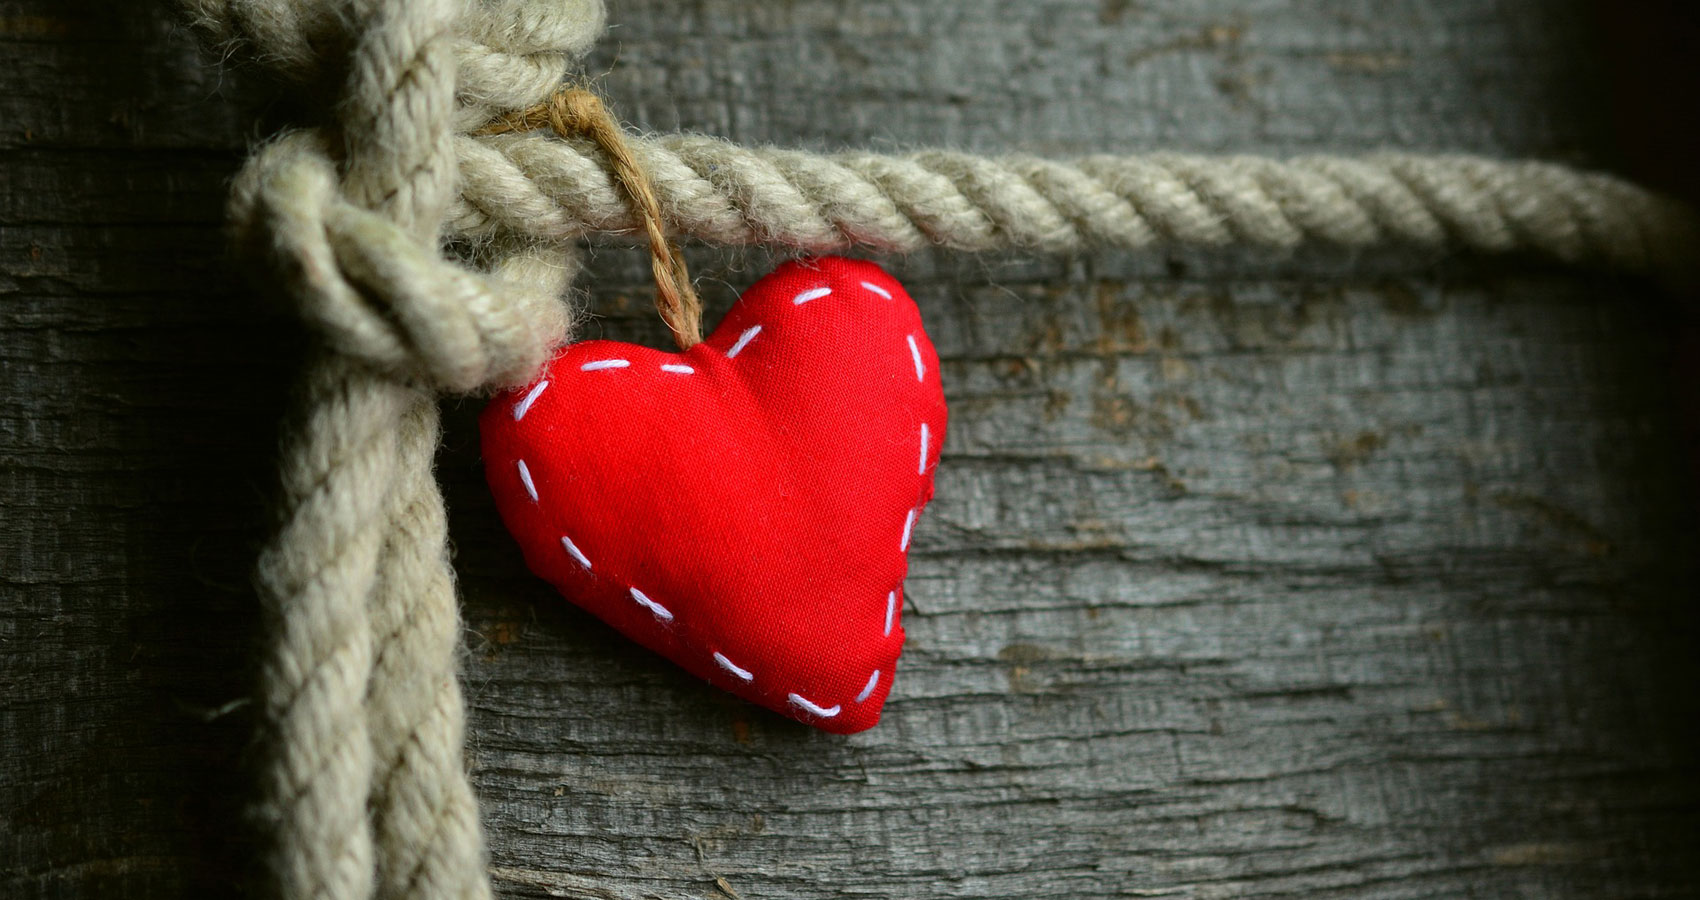 Bind Me Forever With Your Love by Madhumita Sinha at Spillwords.com